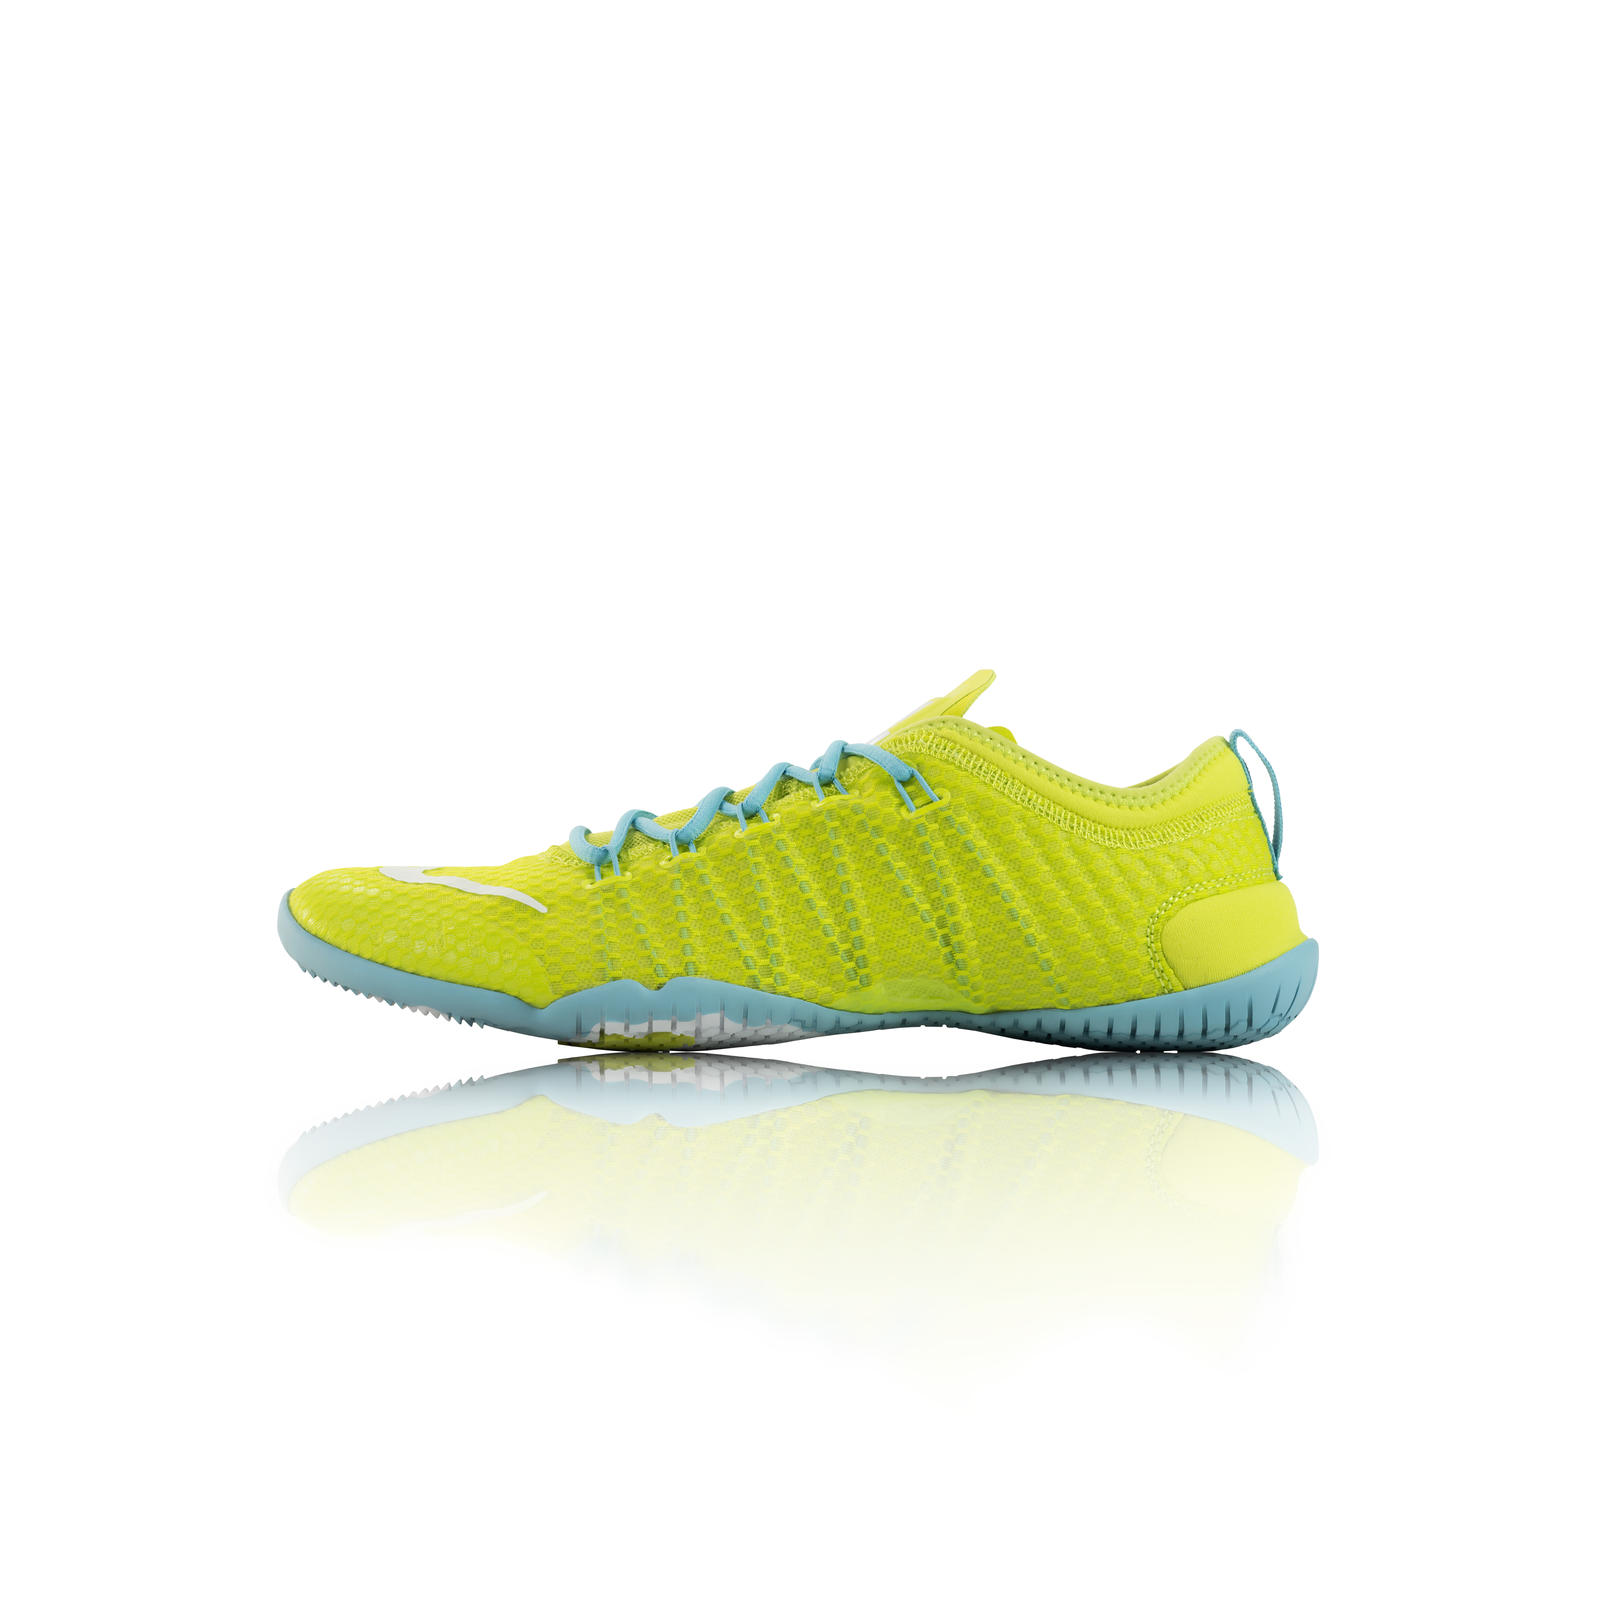 nike free bionic training shoe